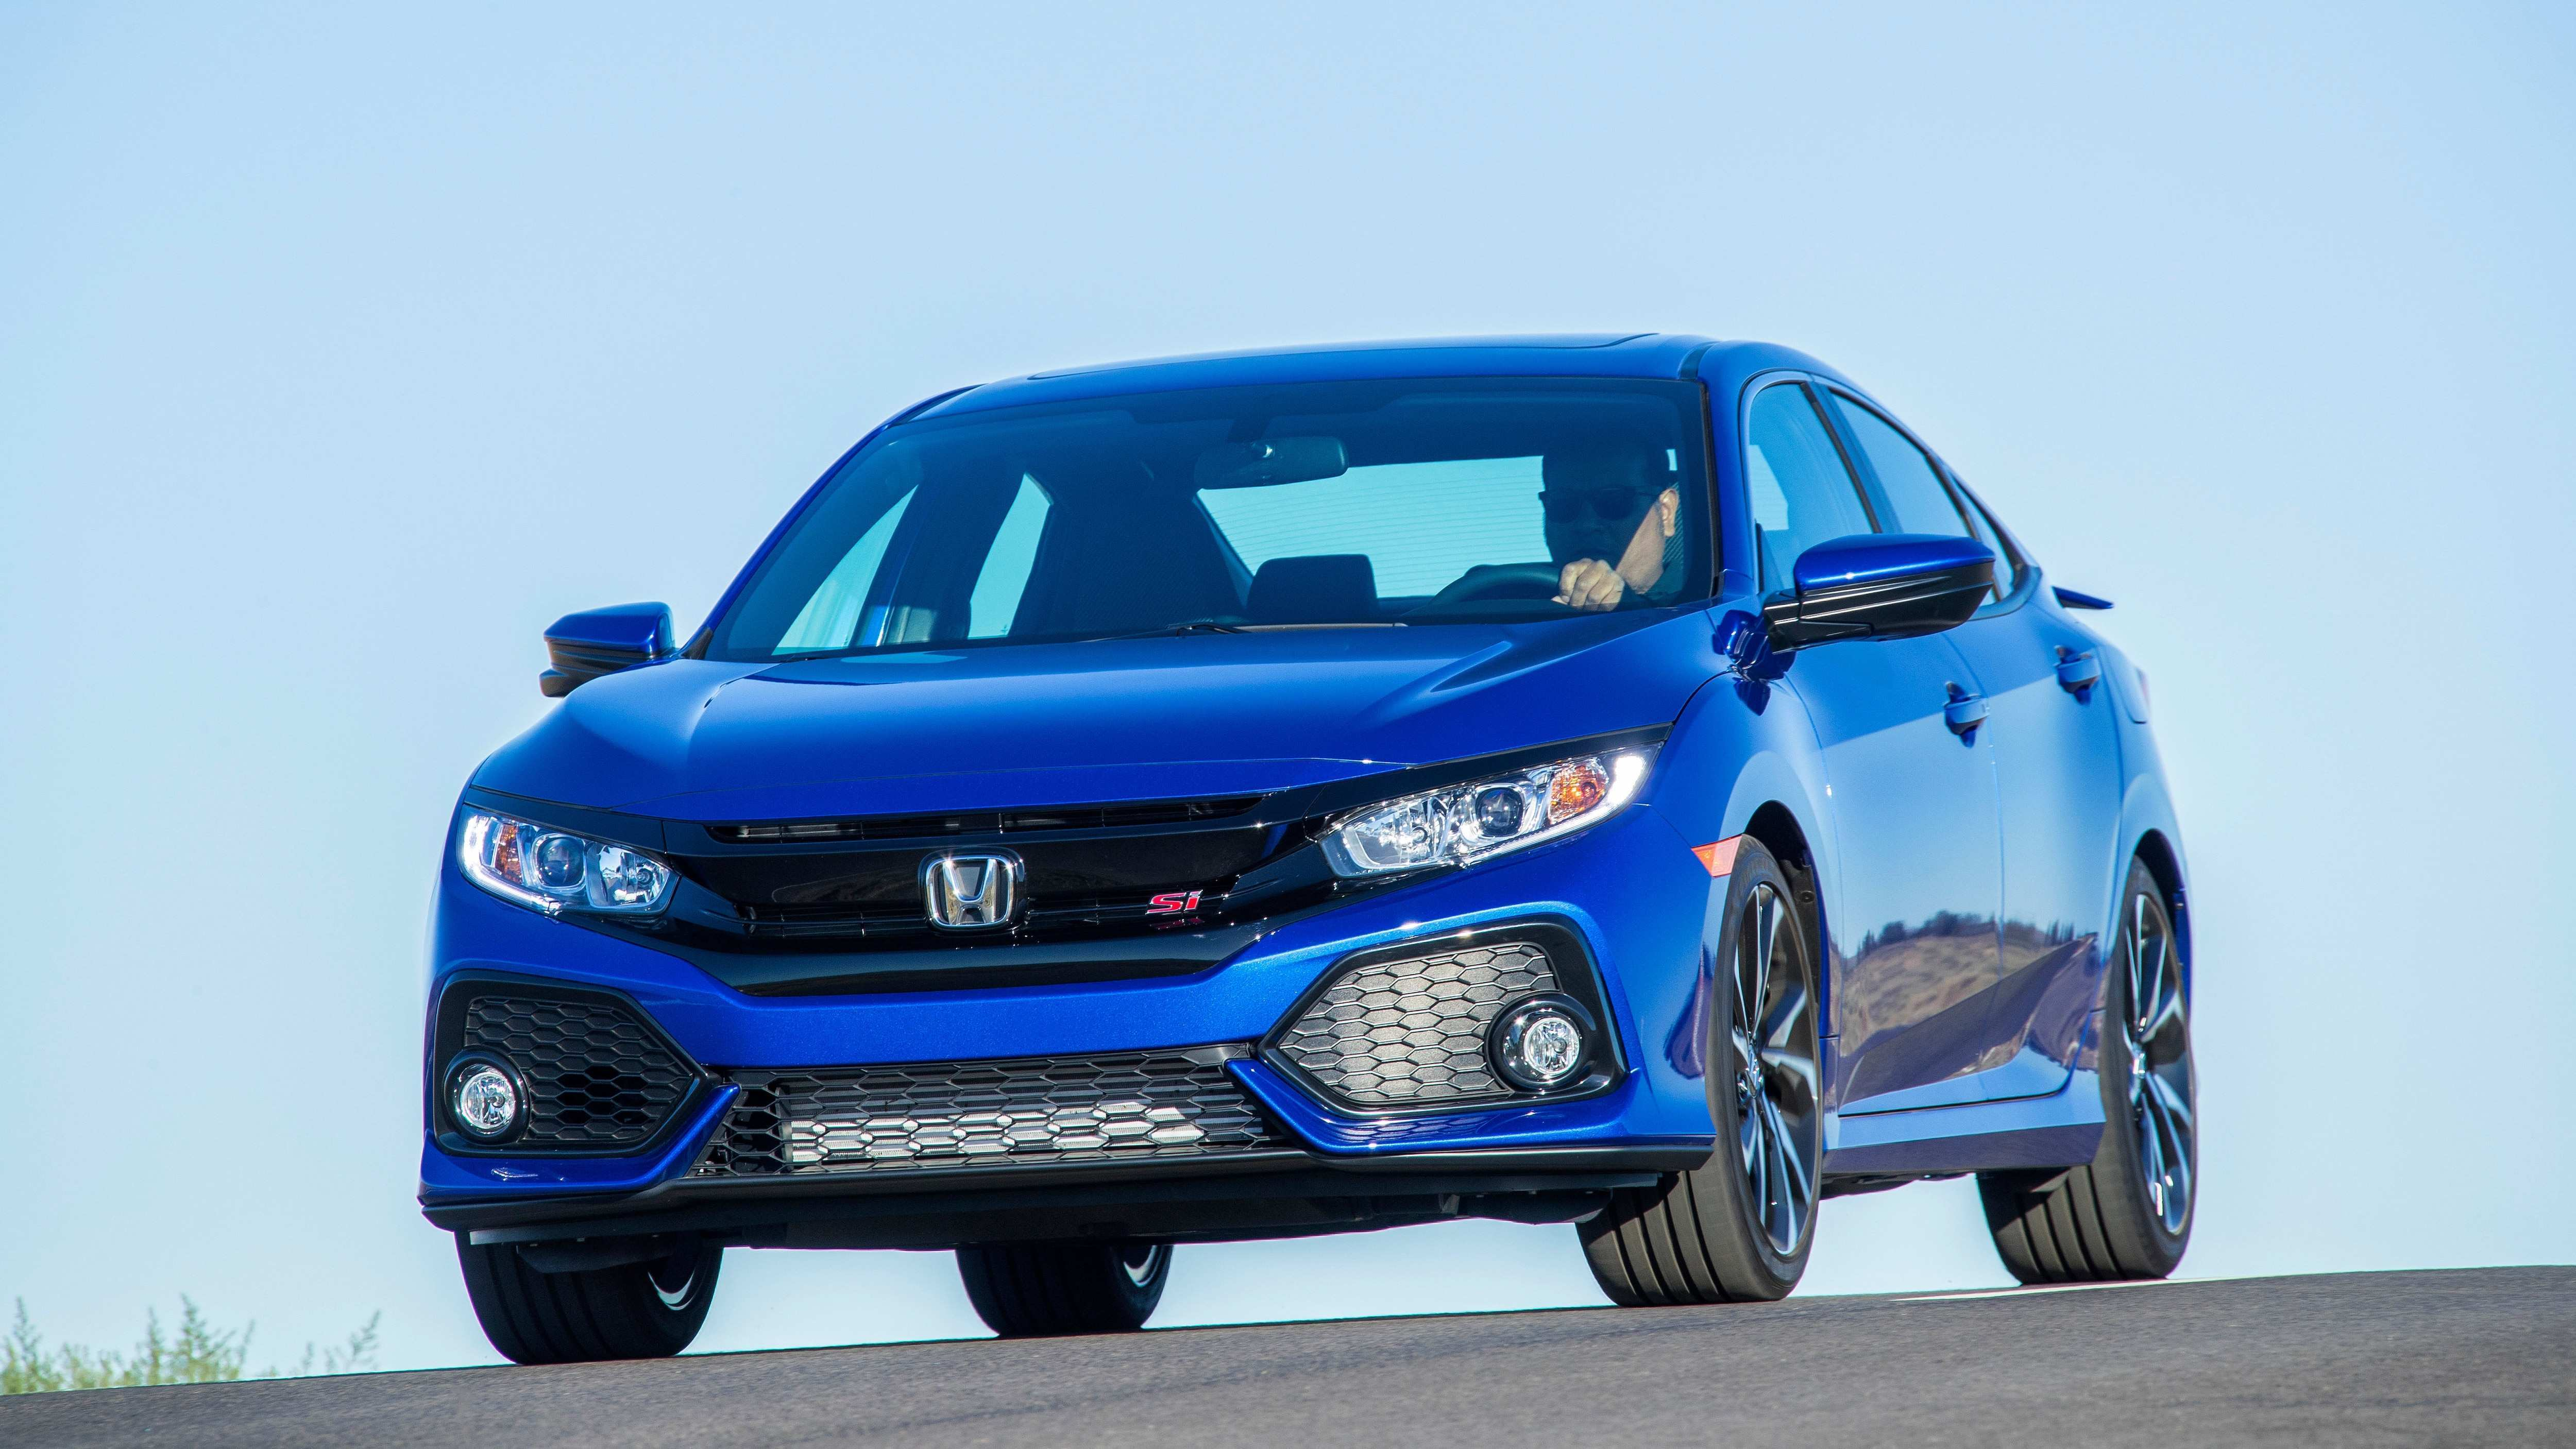 65 New 2019 Honda Civic Si Sedan Price And Release Date